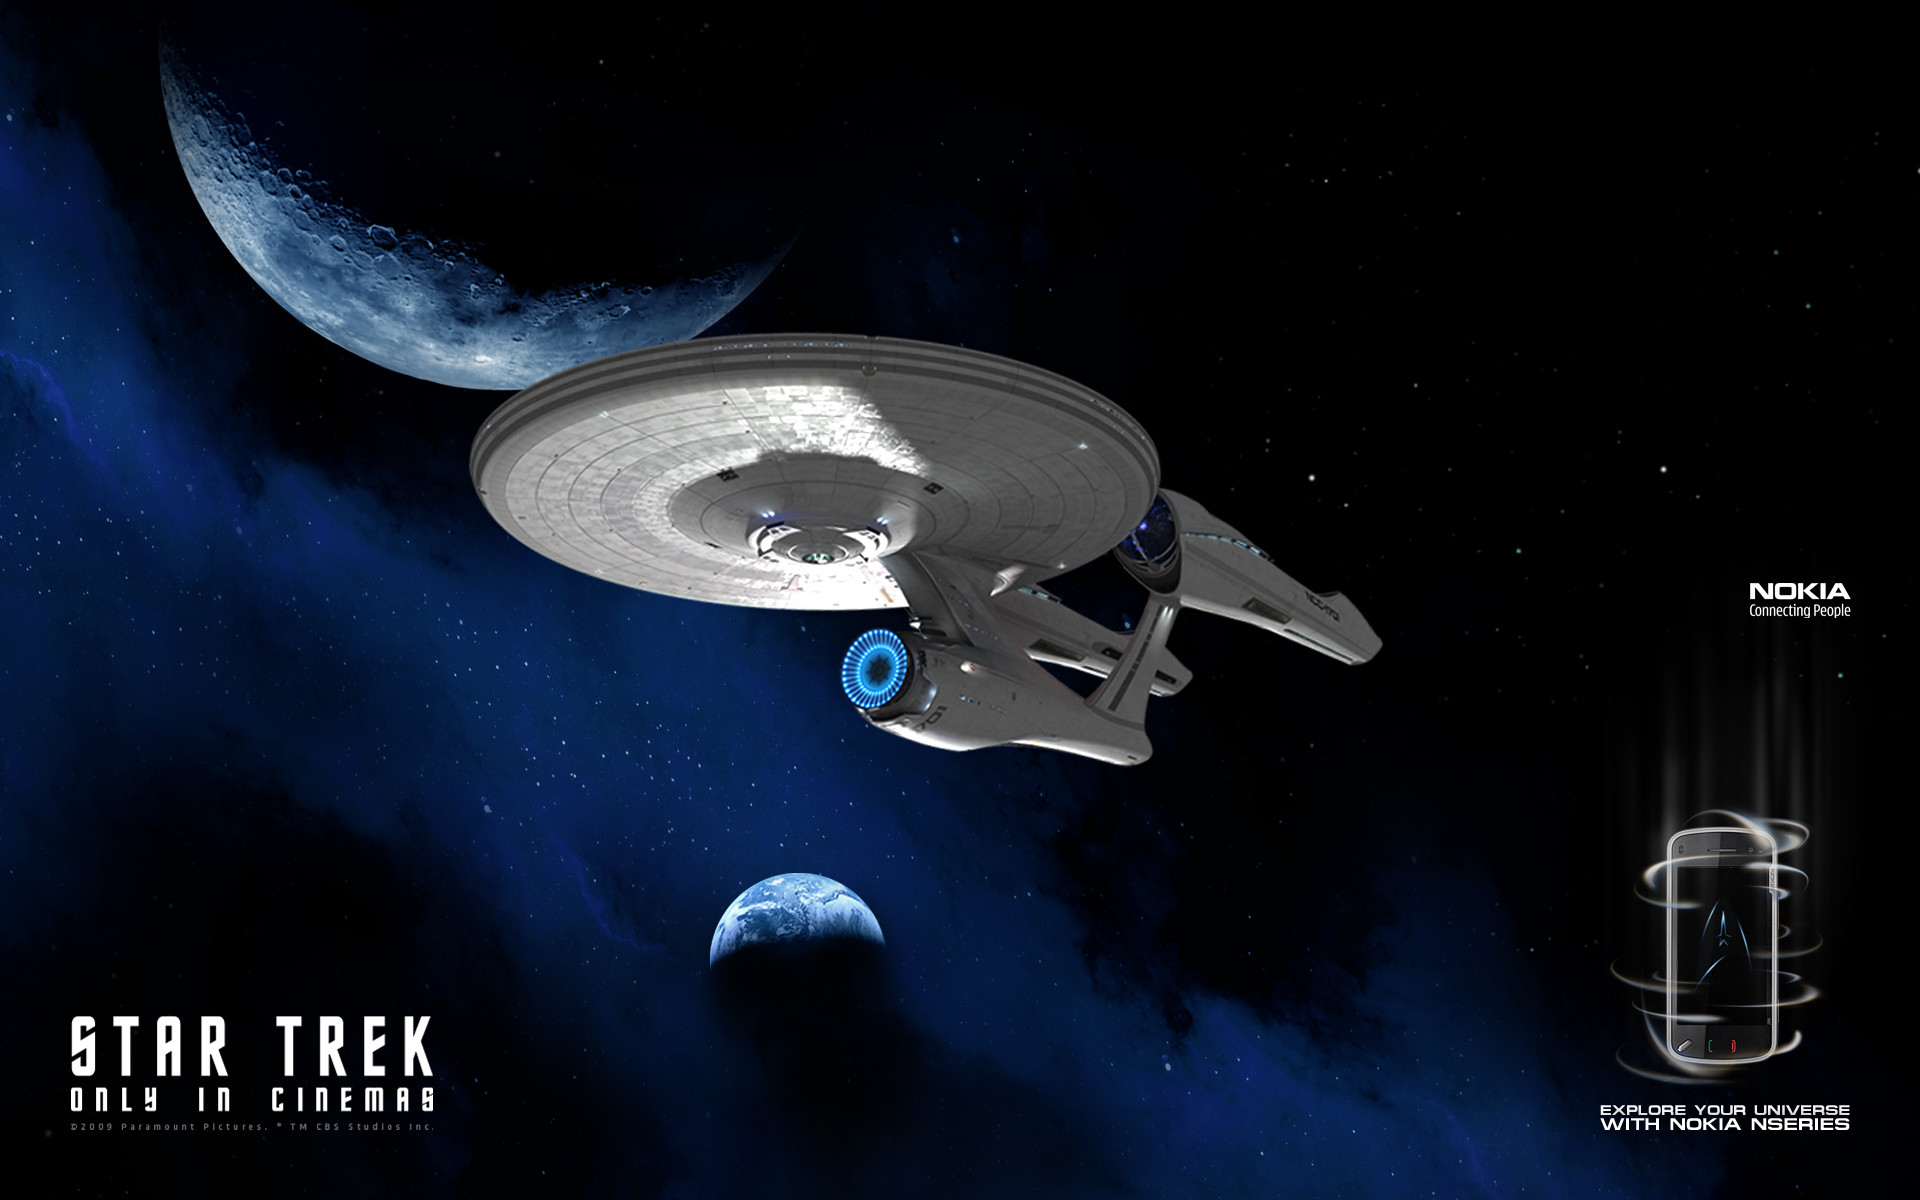 Star Trek 2009 Enterprise Wallpaper 1